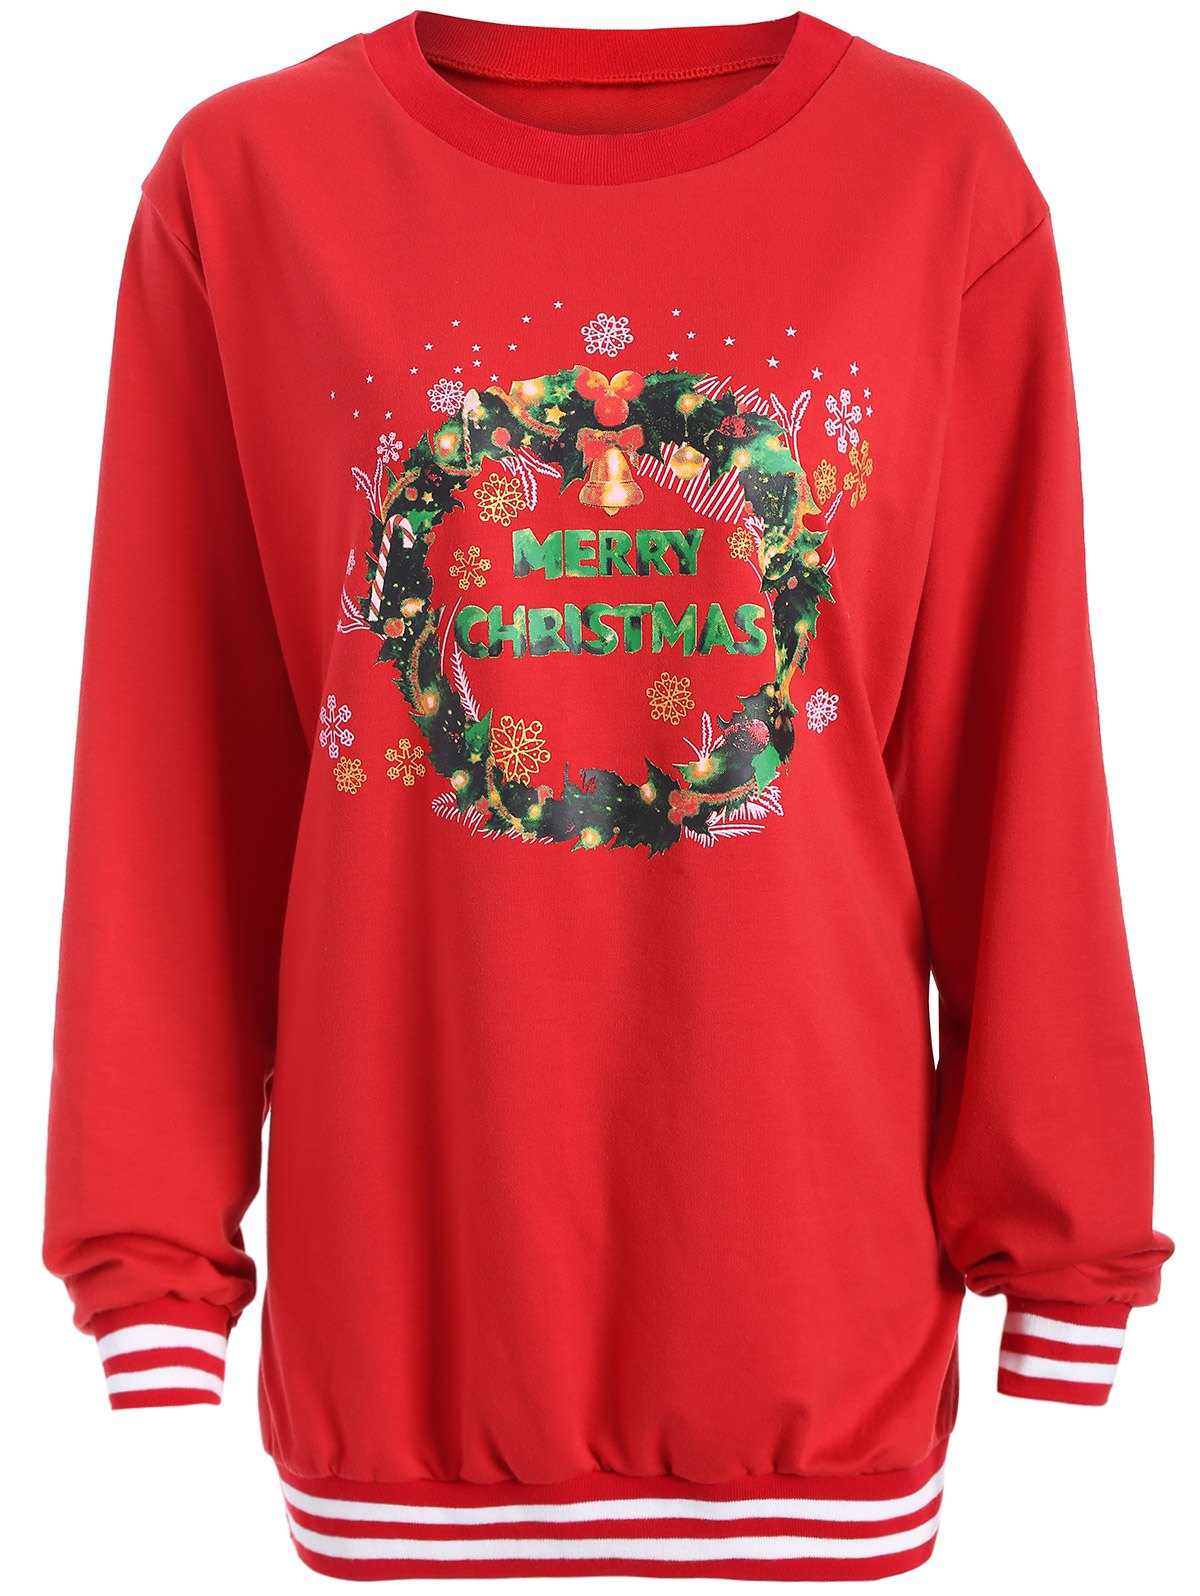 Christmas Graphic Varsity Striped SweatshirtWOMEN<br><br>Size: 3XL; Color: RED; Material: Cotton,Polyester; Shirt Length: Long; Sleeve Length: Full; Style: Fashion; Pattern Style: Print; Season: Fall,Spring,Winter; Weight: 0.382kg; Package Contents: 1 x Sweatshirt;